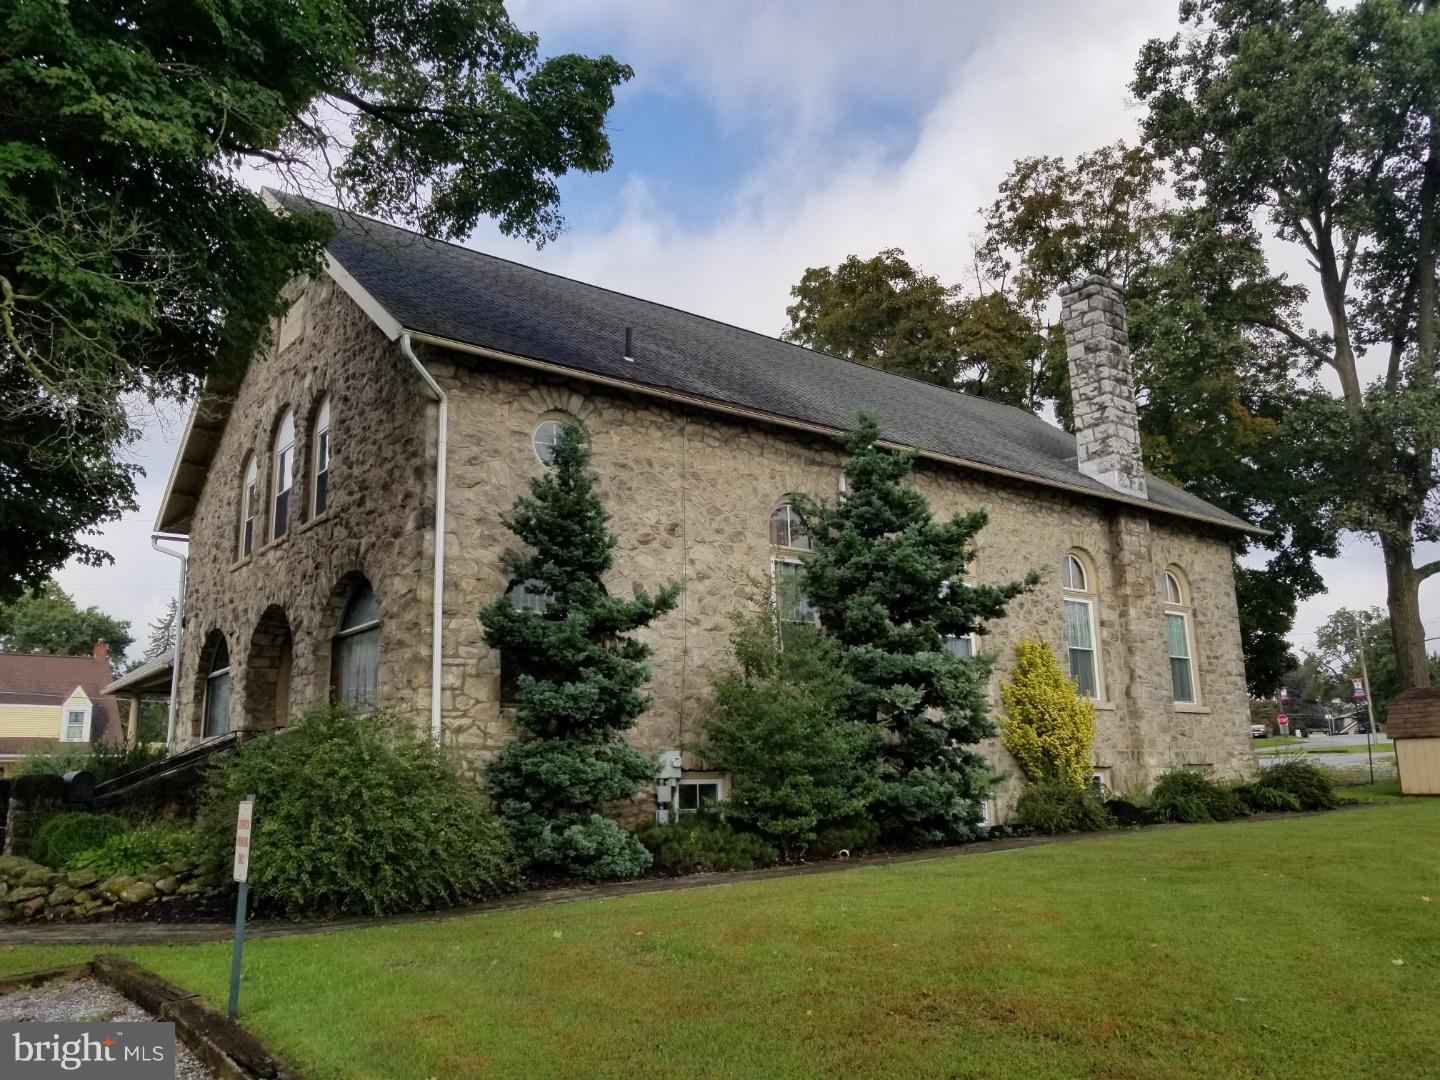 Well maintained and updated stone built church building on large corner lot ready for new ownership.  Handicap accessible into large sanctuary with sound system space, gas fireplace & wood paneled ceiling.  Features include large updated kitchen on lower level, with multiple classroom/social rooms, nursery room; 2nd floor meeting rooms & office.  Separate M/F restrooms on lower level & storage closets with outside entrance.  Newer carpet and paint, multiple zoned heat system, carport with new roof in 2017, all windows new in 2016, updated heating/AC system in 2007.  Zoning allows opportunity, buyer to check with township.